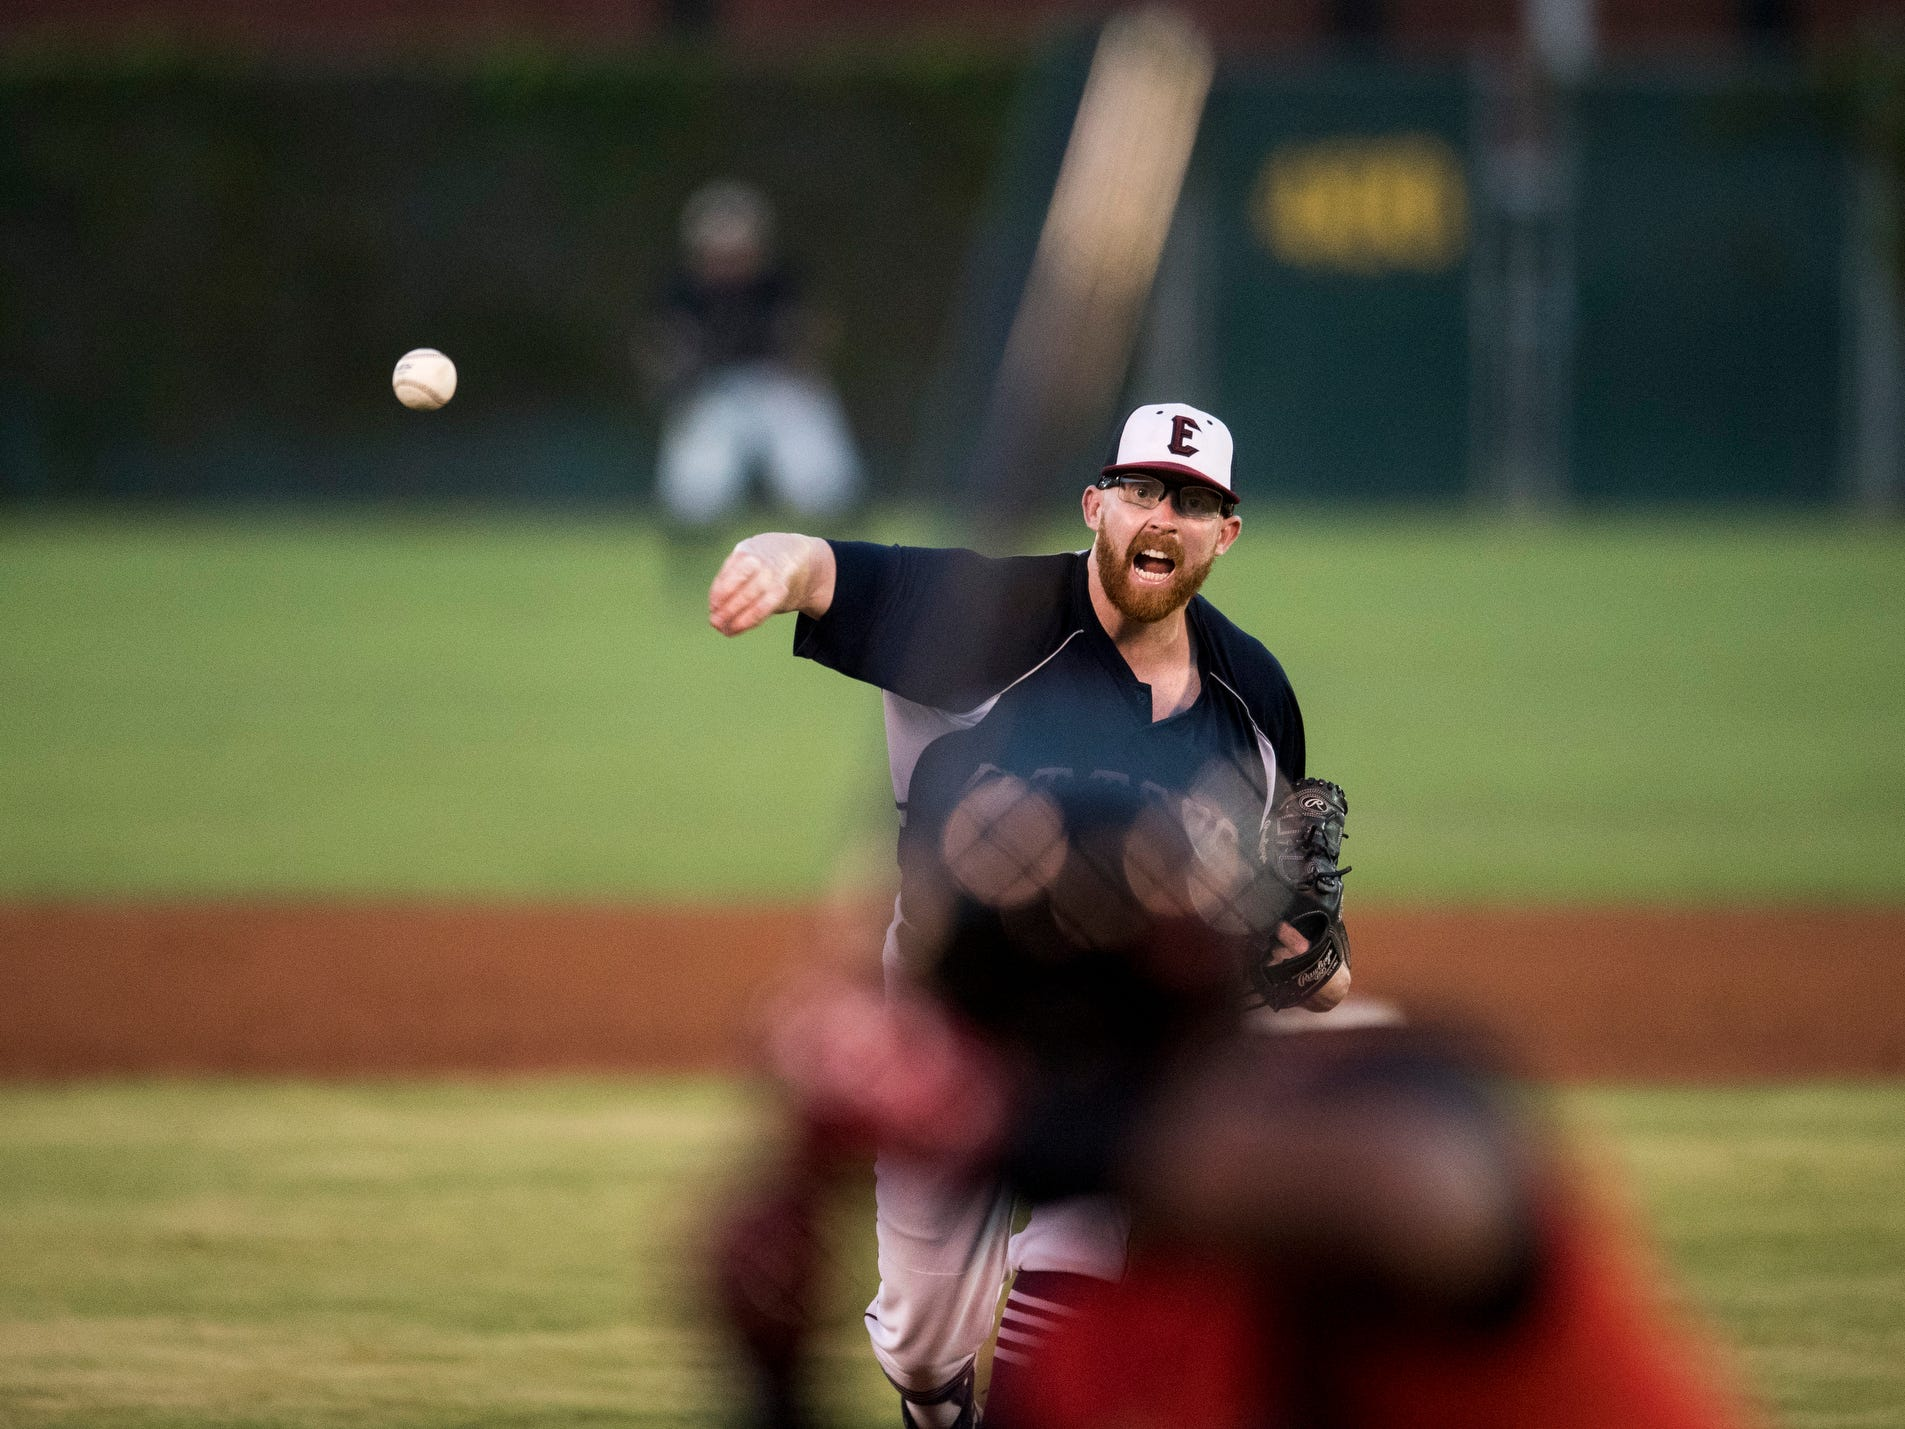 Evansville's Tyler Beardsley (46) pitches the ball during game two of the Frontier League Division Series at Bosse Field against the Washington Wild Things Wednesday, September 5, 2018.